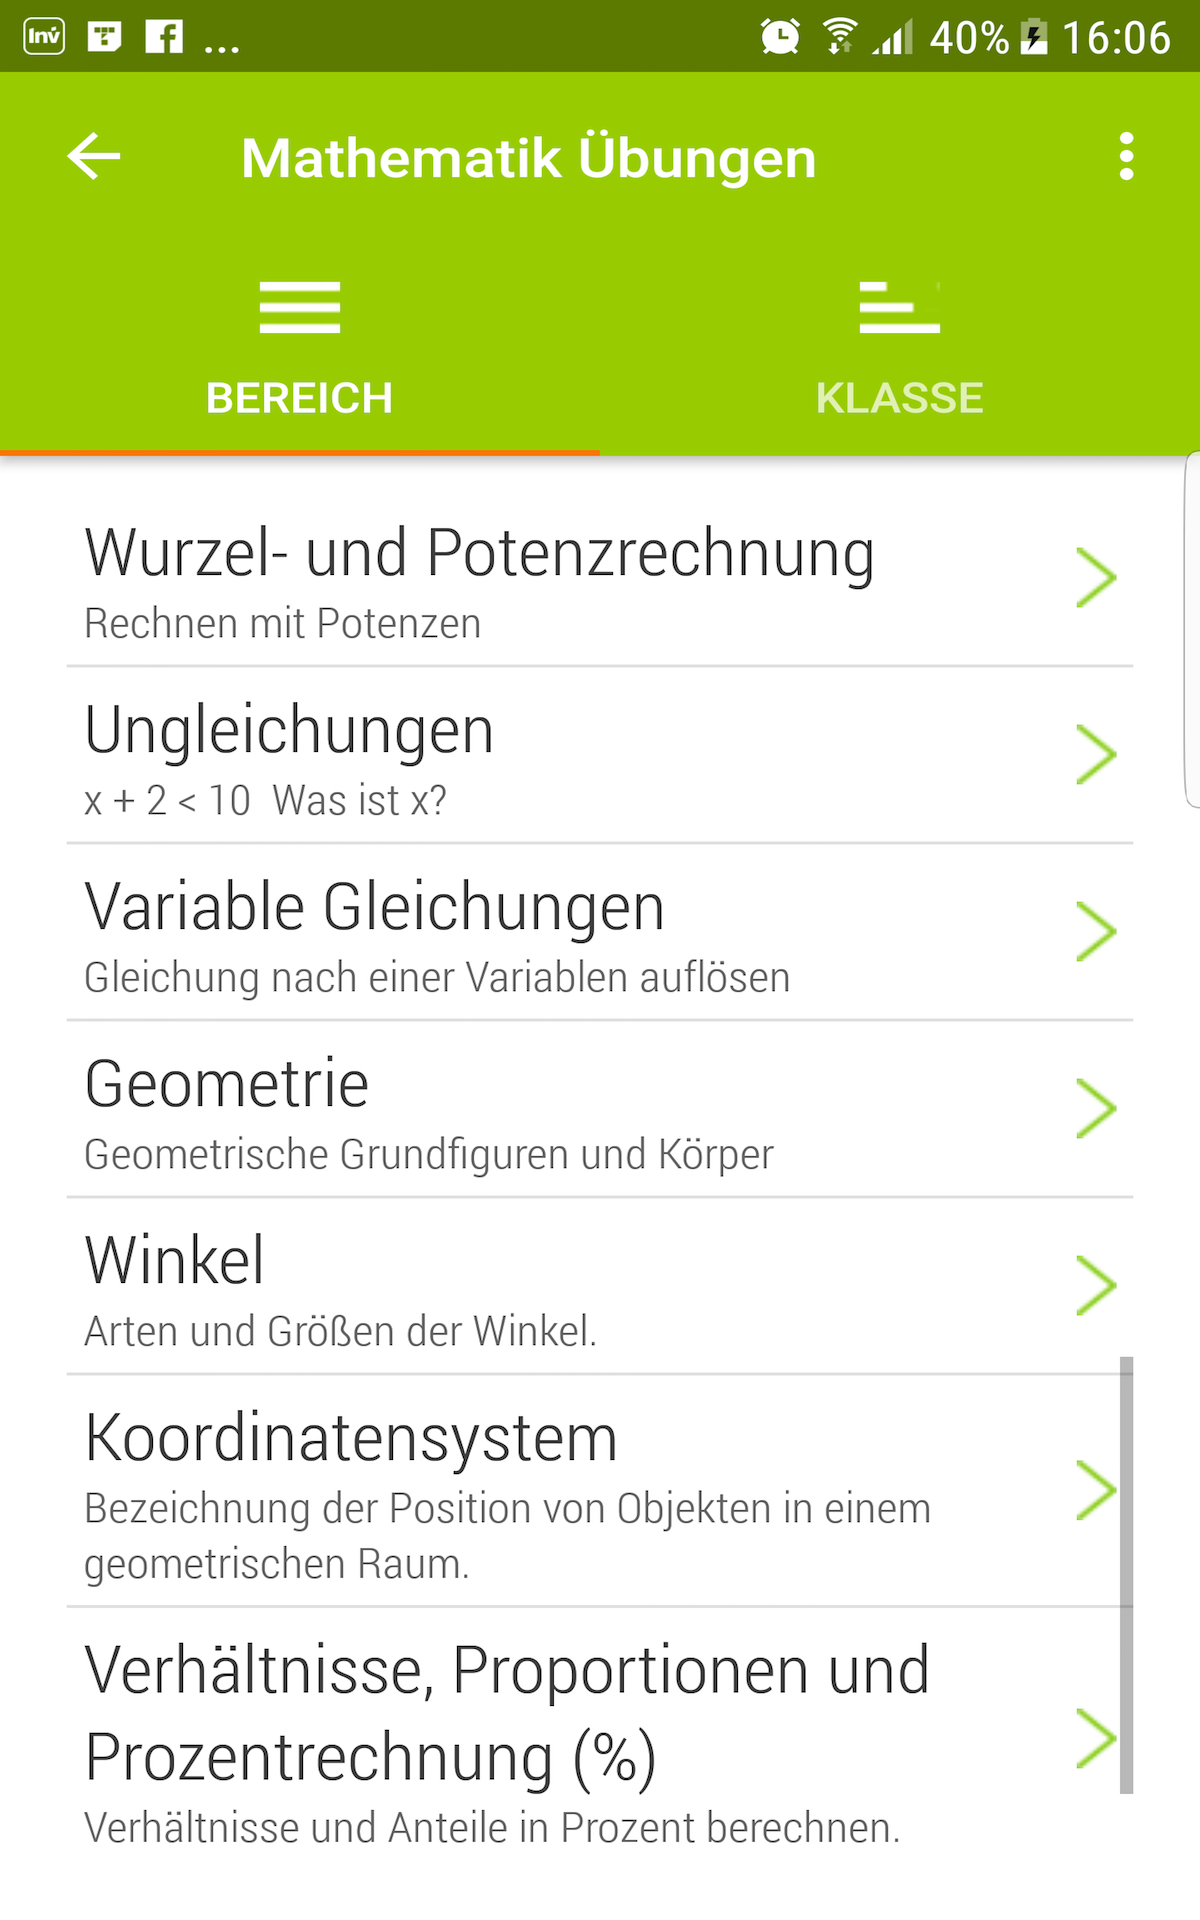 Mathematik Übungen: Amazon.de: Apps für Android